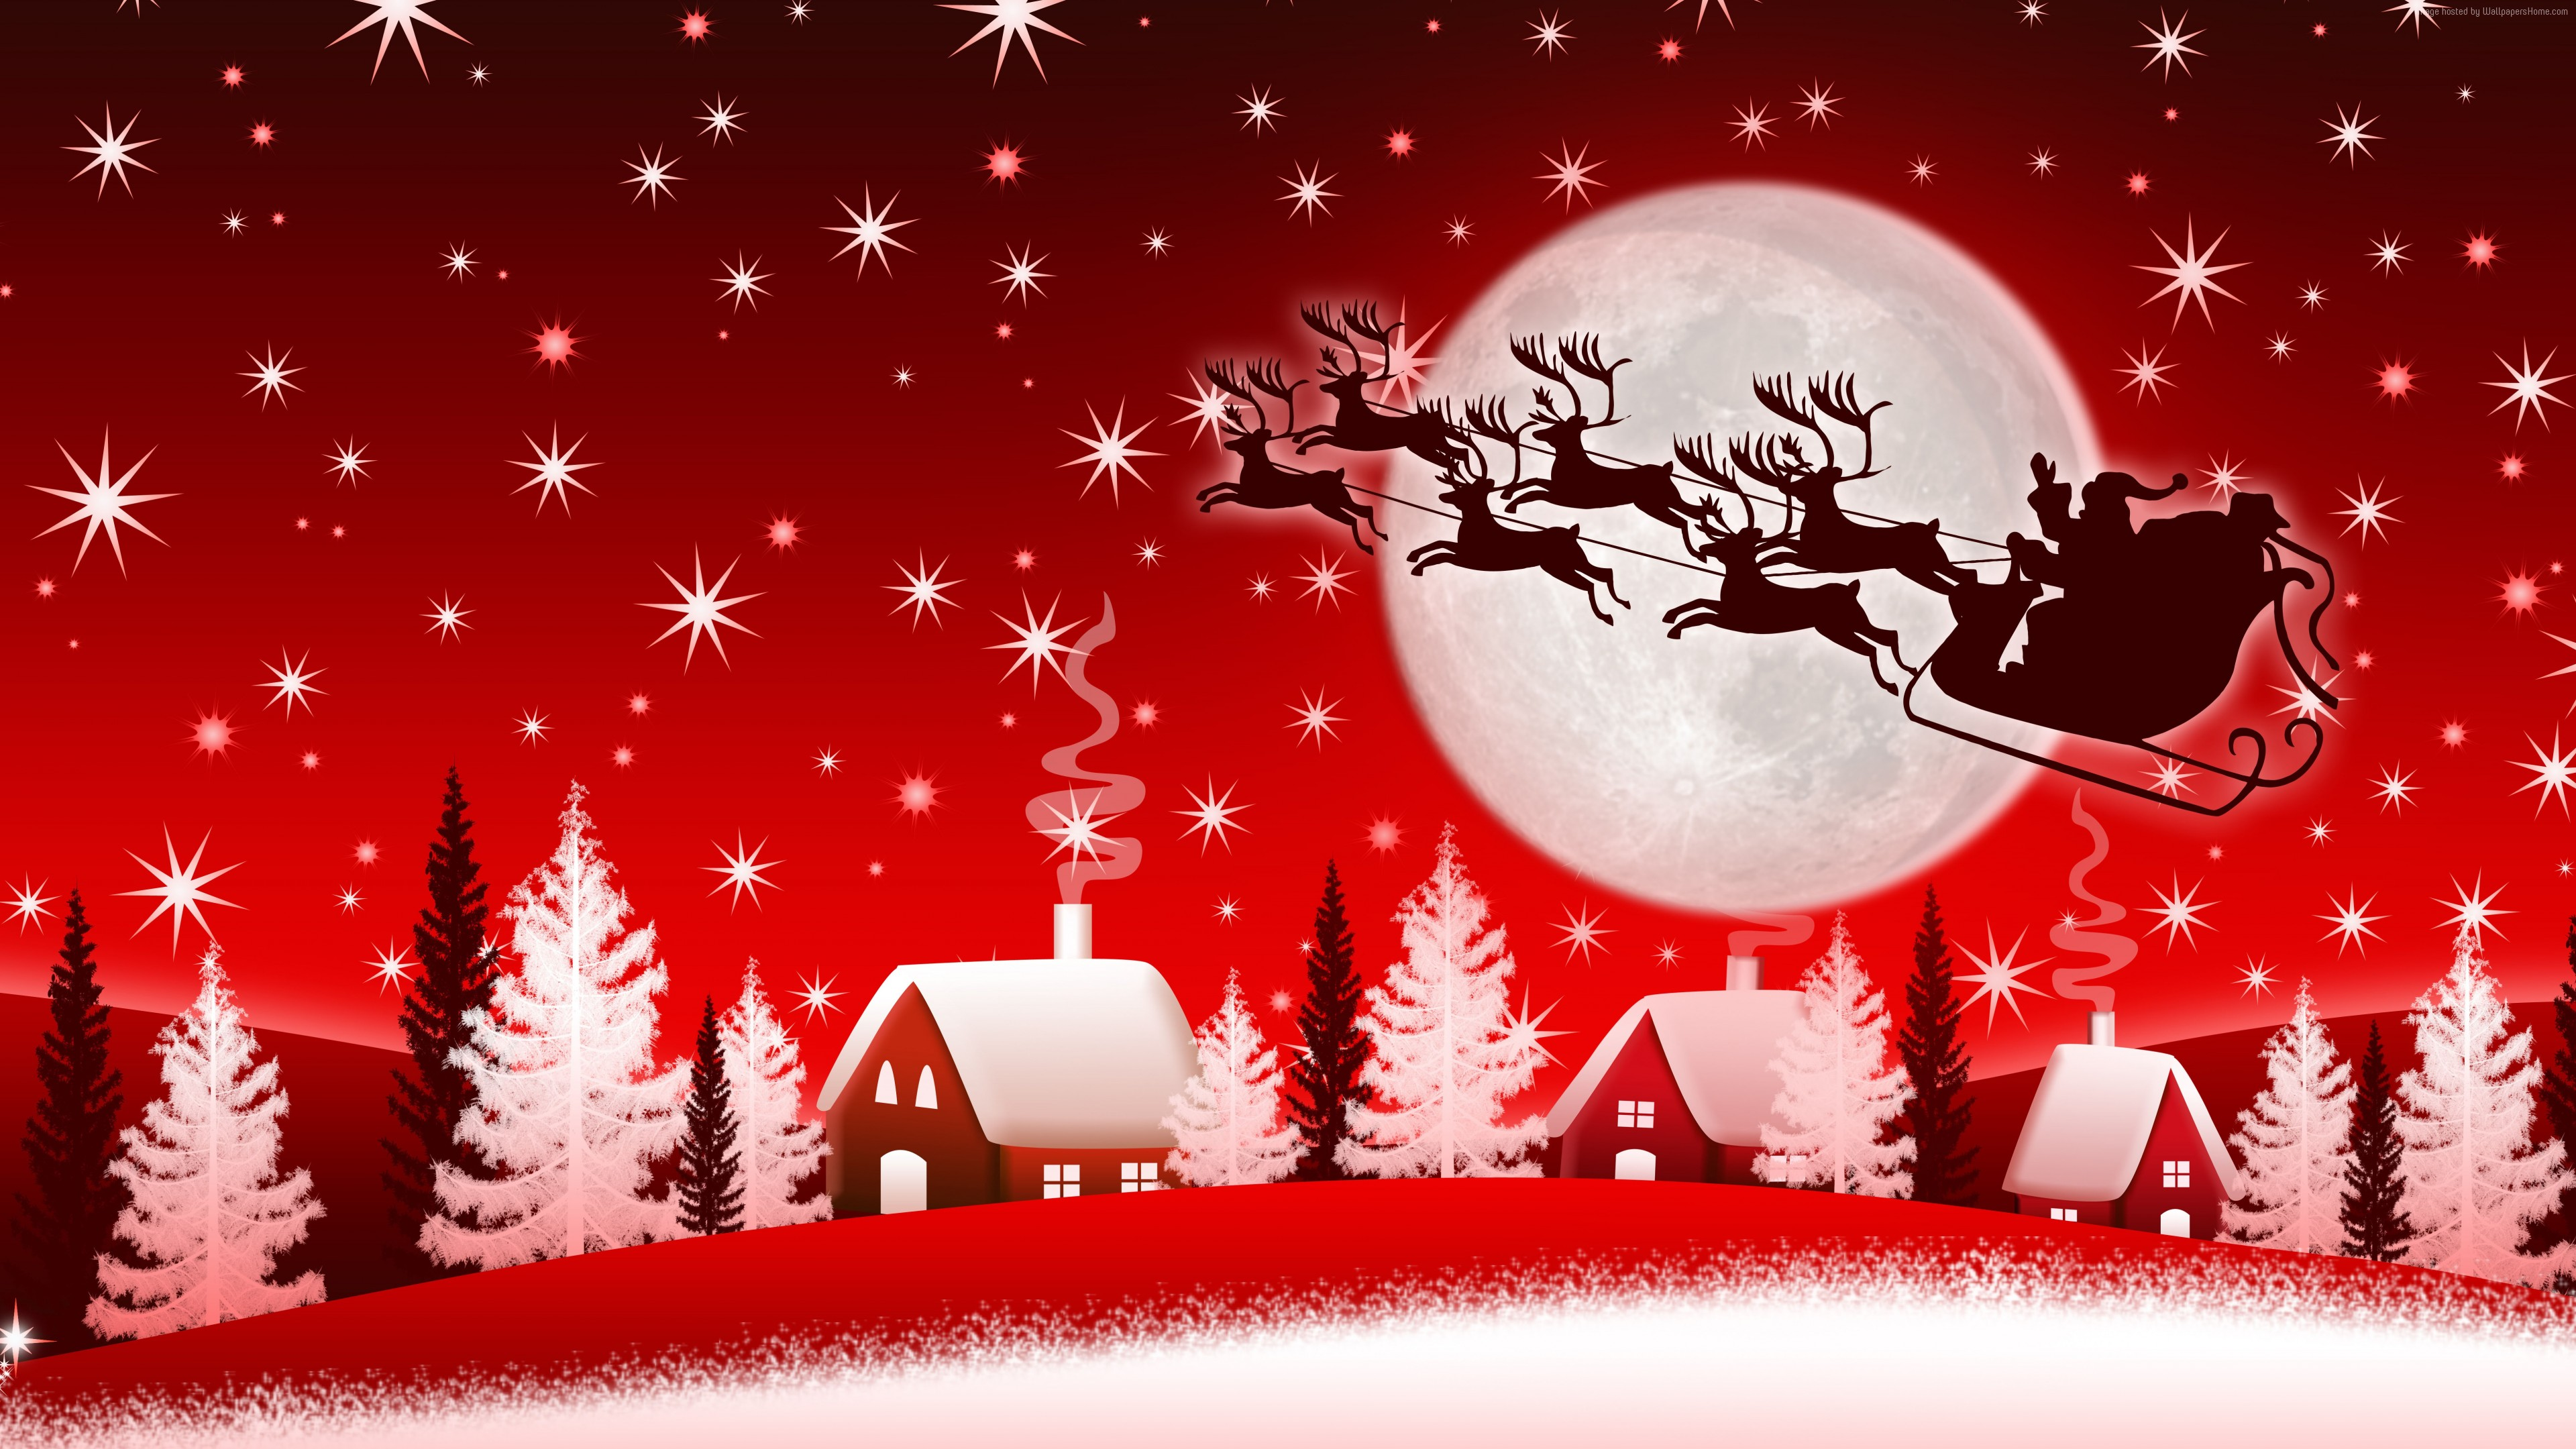 Wallpaper Christmas New Year Santa Deer Moon Winter 8k Holidays Download